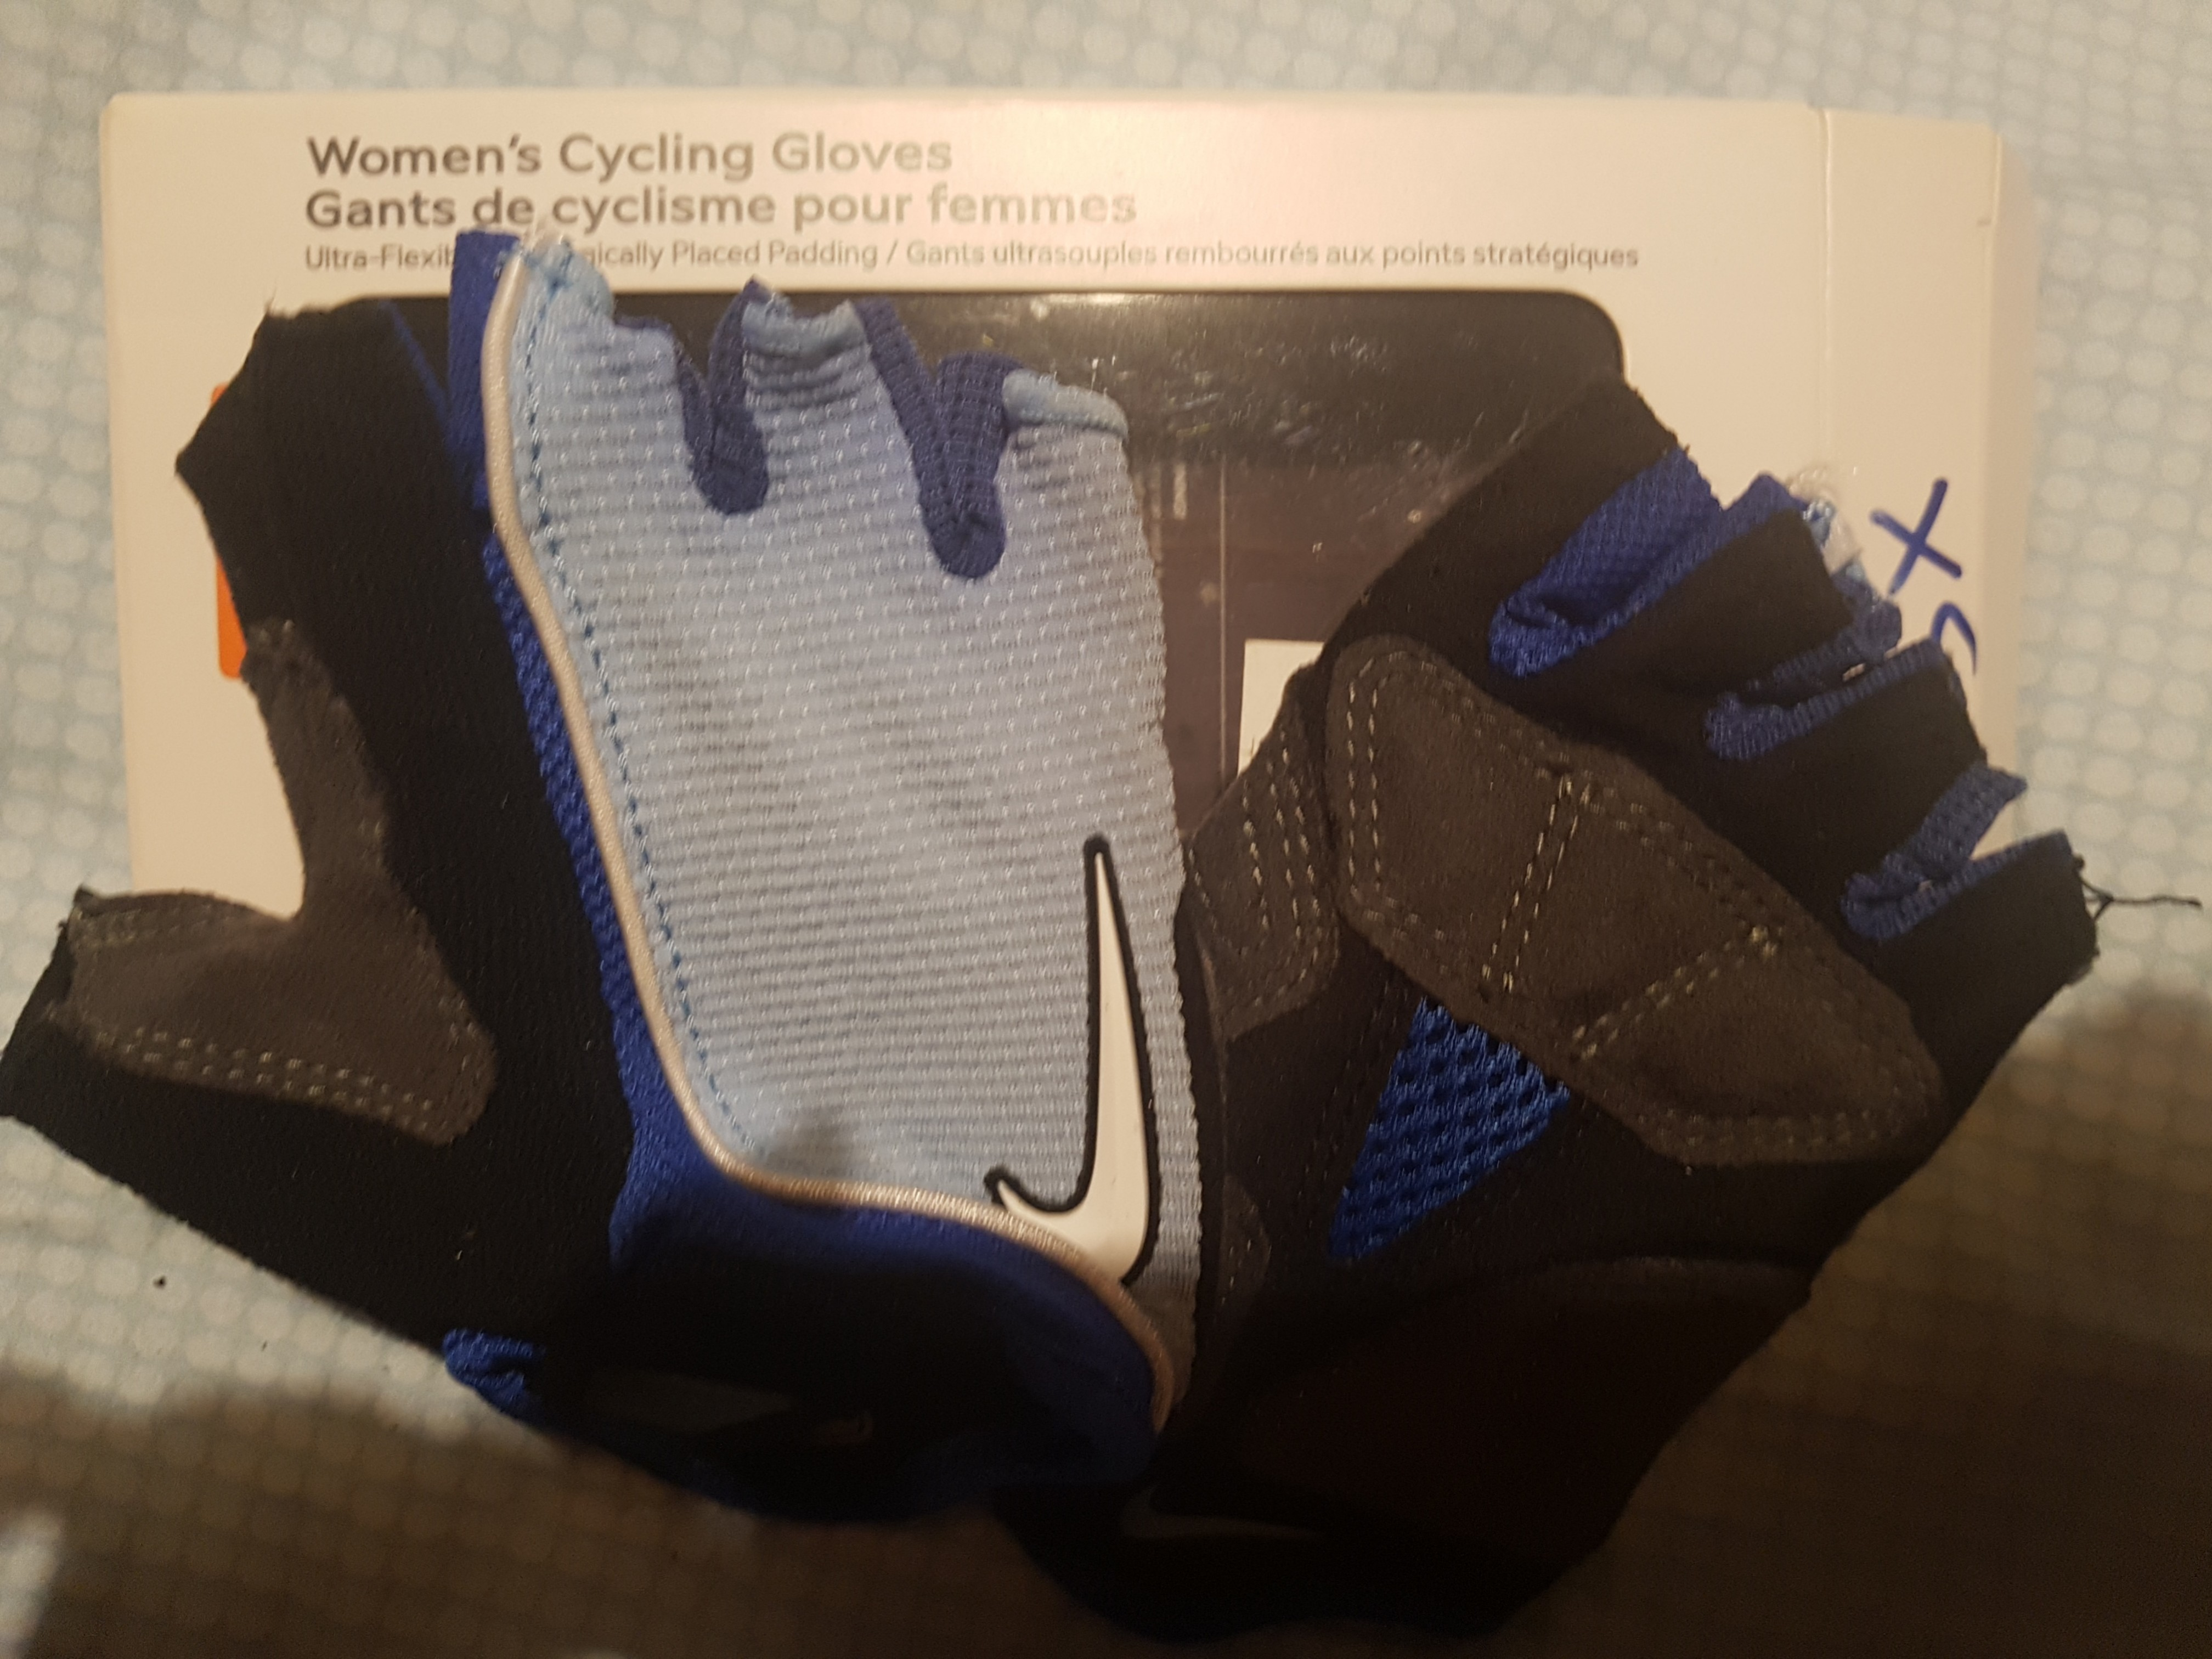 Barry De alguna manera Agotar  Nike women's cycling gloves, Sports, Braces & Supports on Carousell